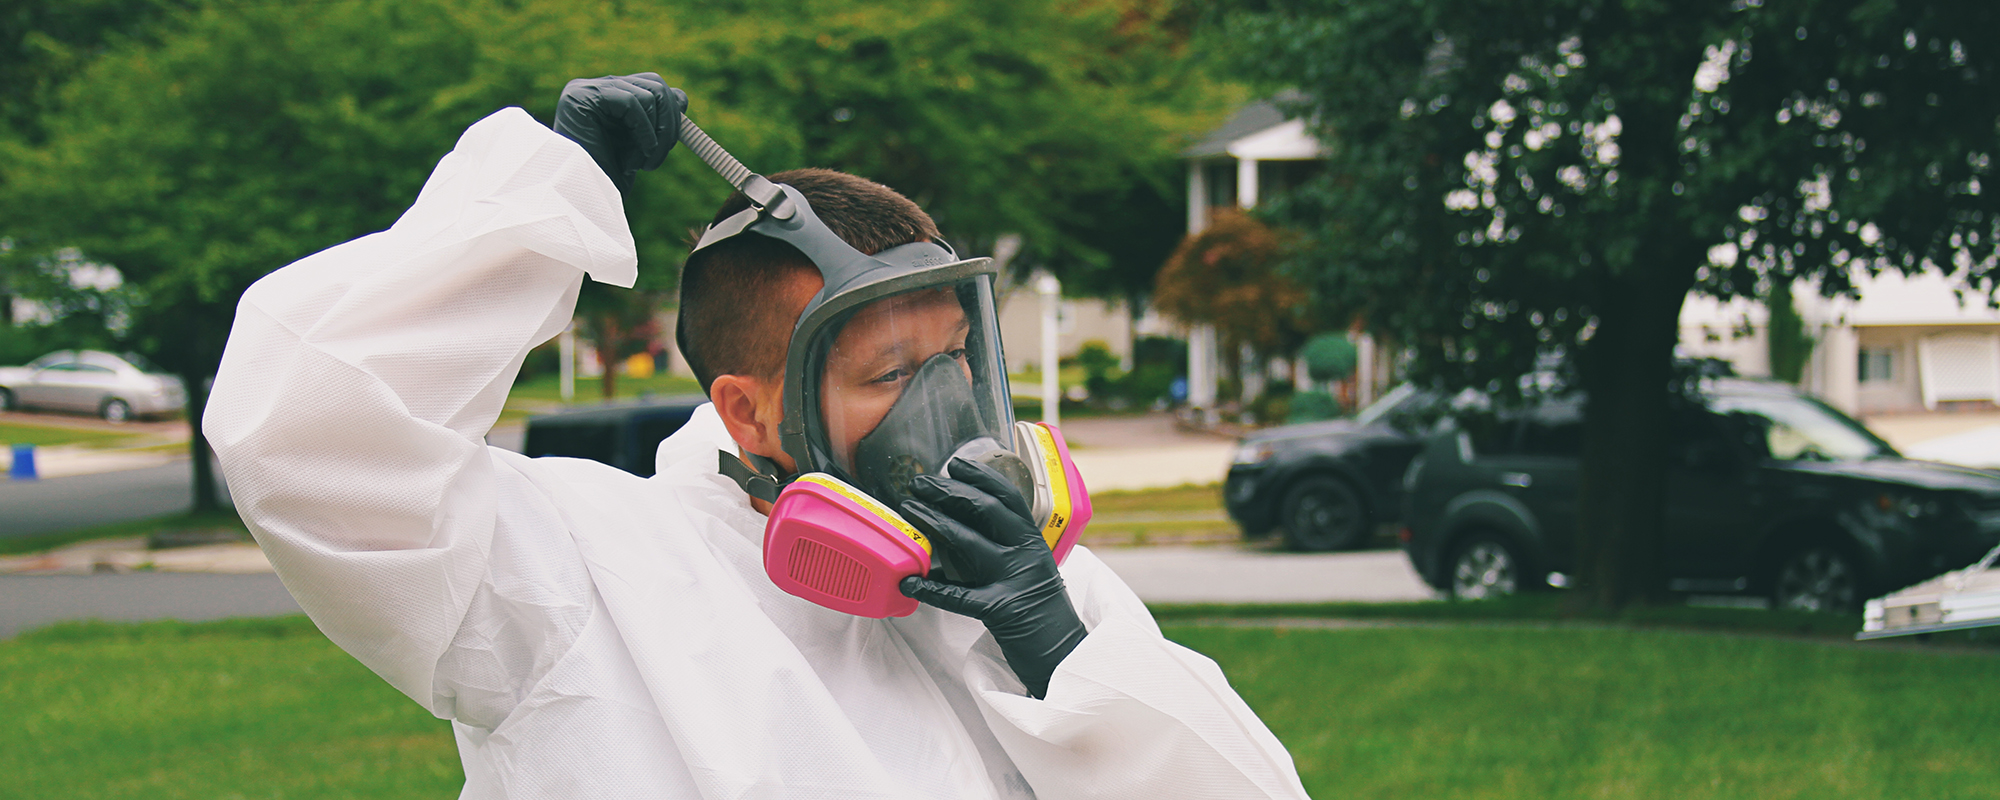 mold-remediation-mount-laurel-nj